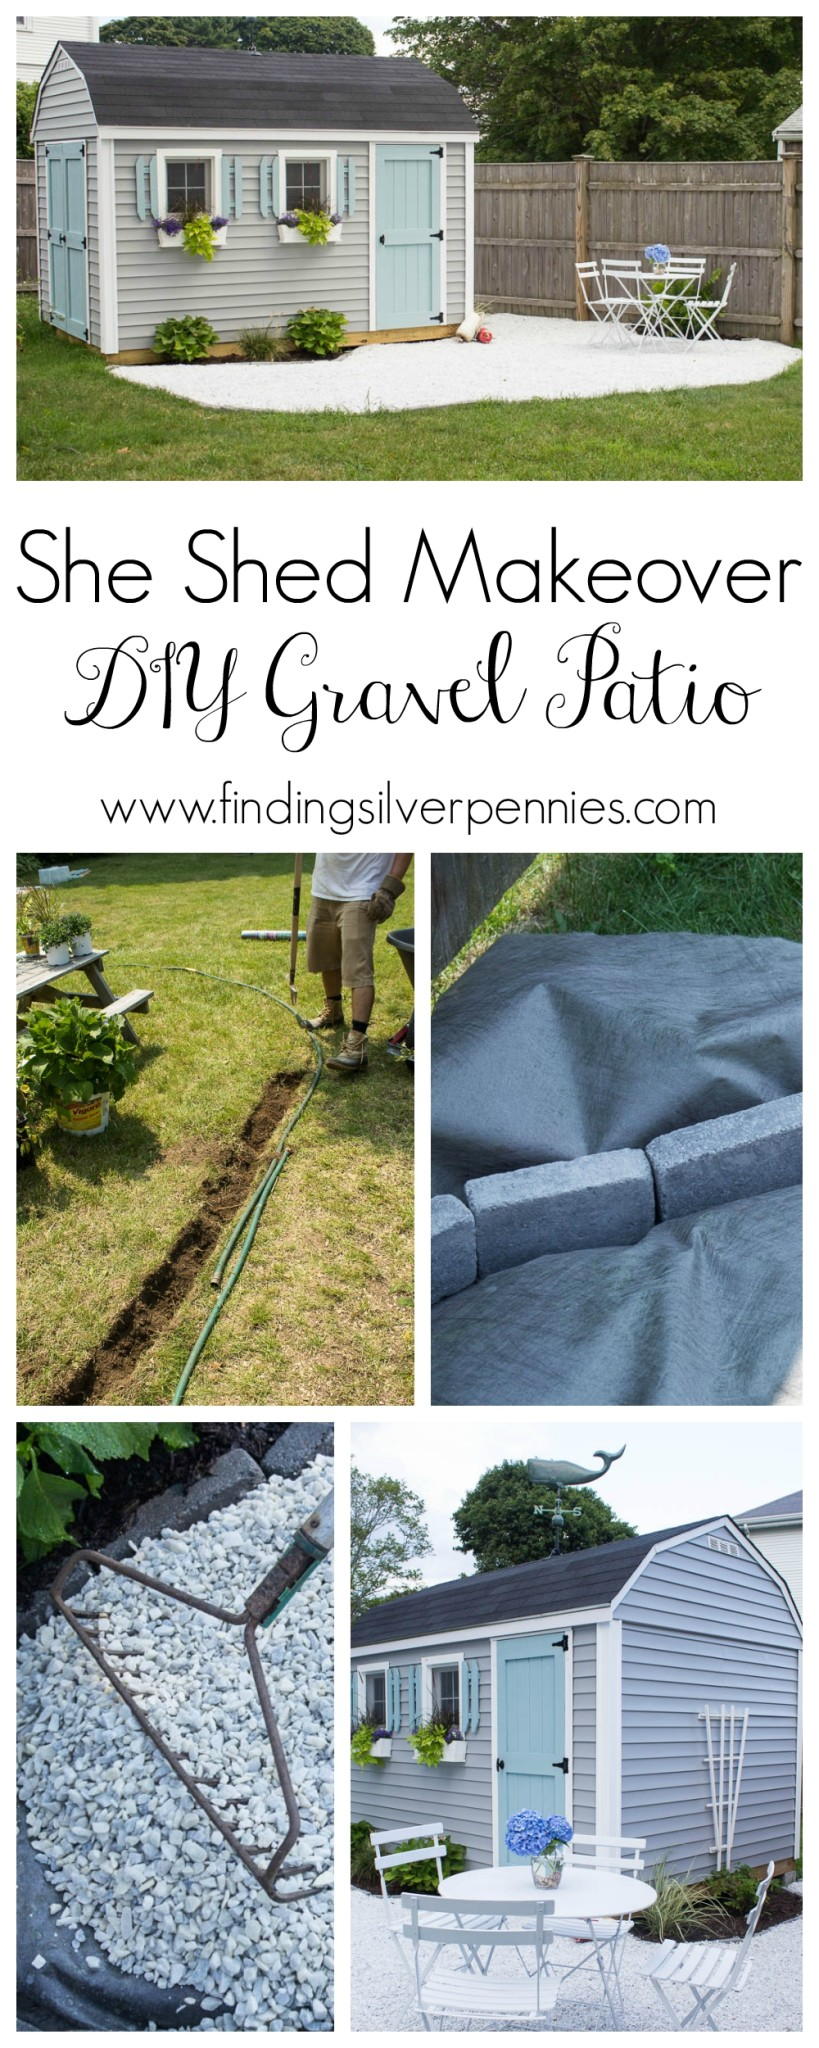 She Shed Makeover DIY Gravel Patio